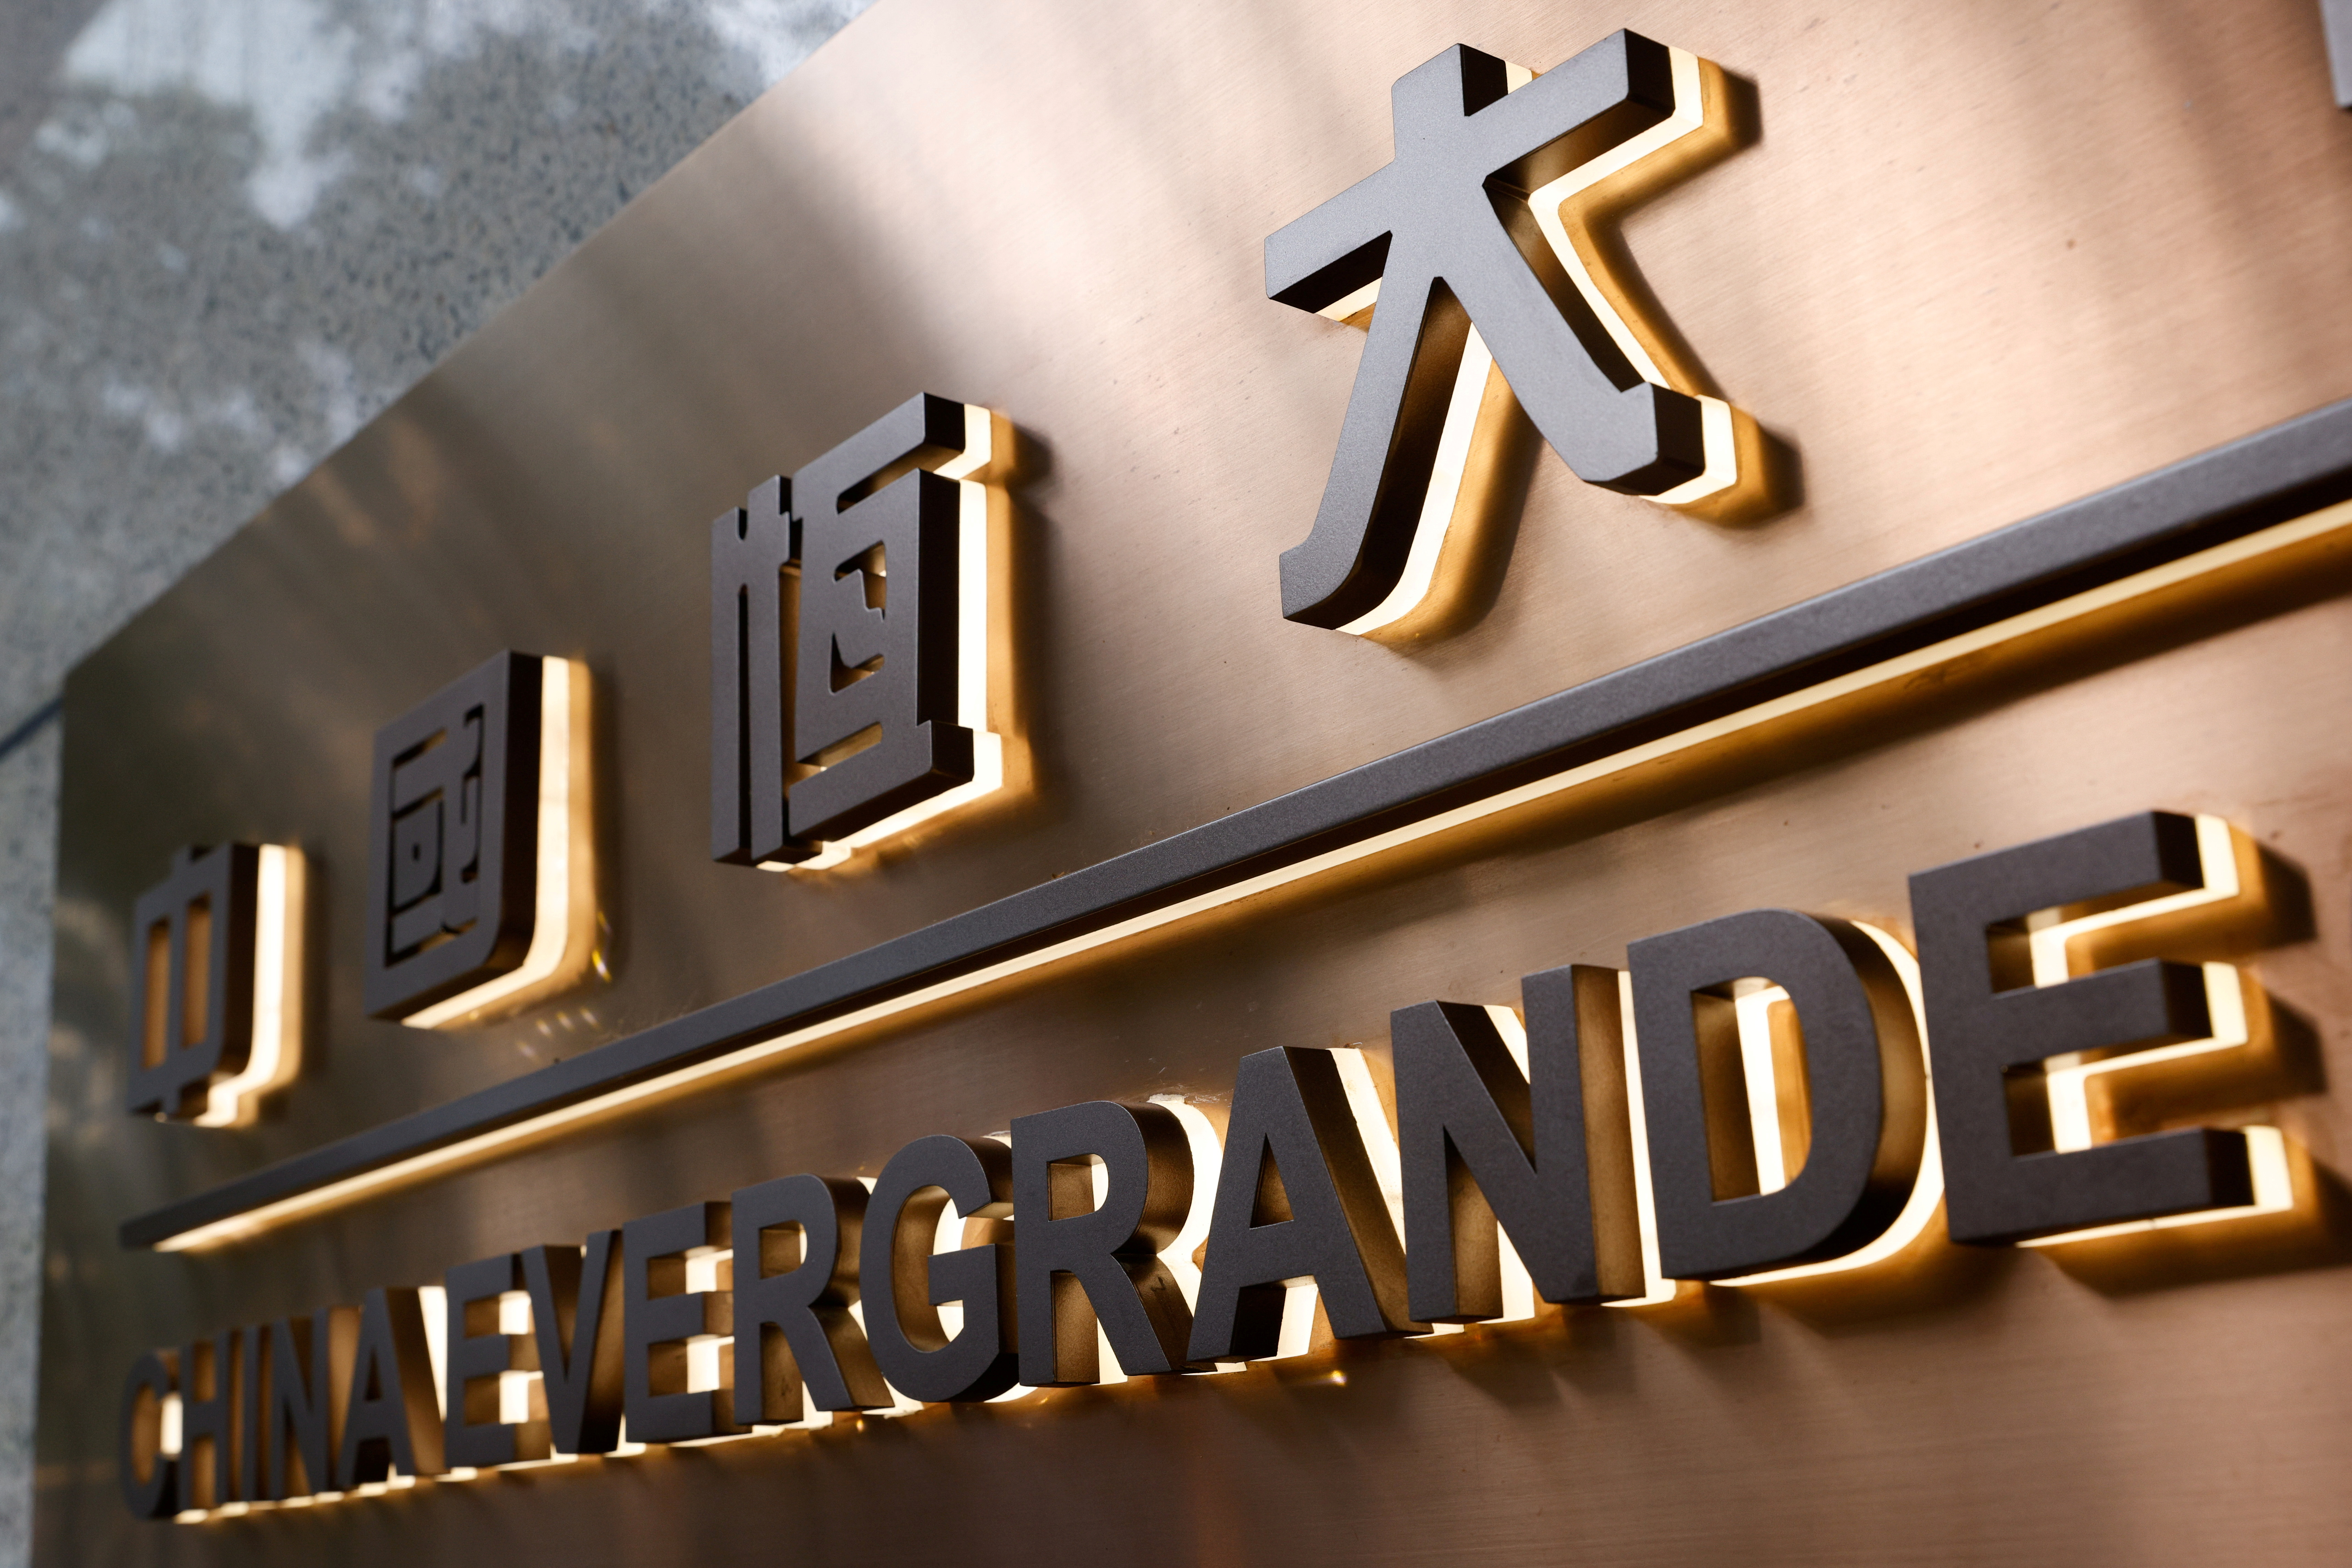 The China Evergrande Centre building sign is seen in Hong Kong, China September 23, 2021. REUTERS/Tyrone Siu